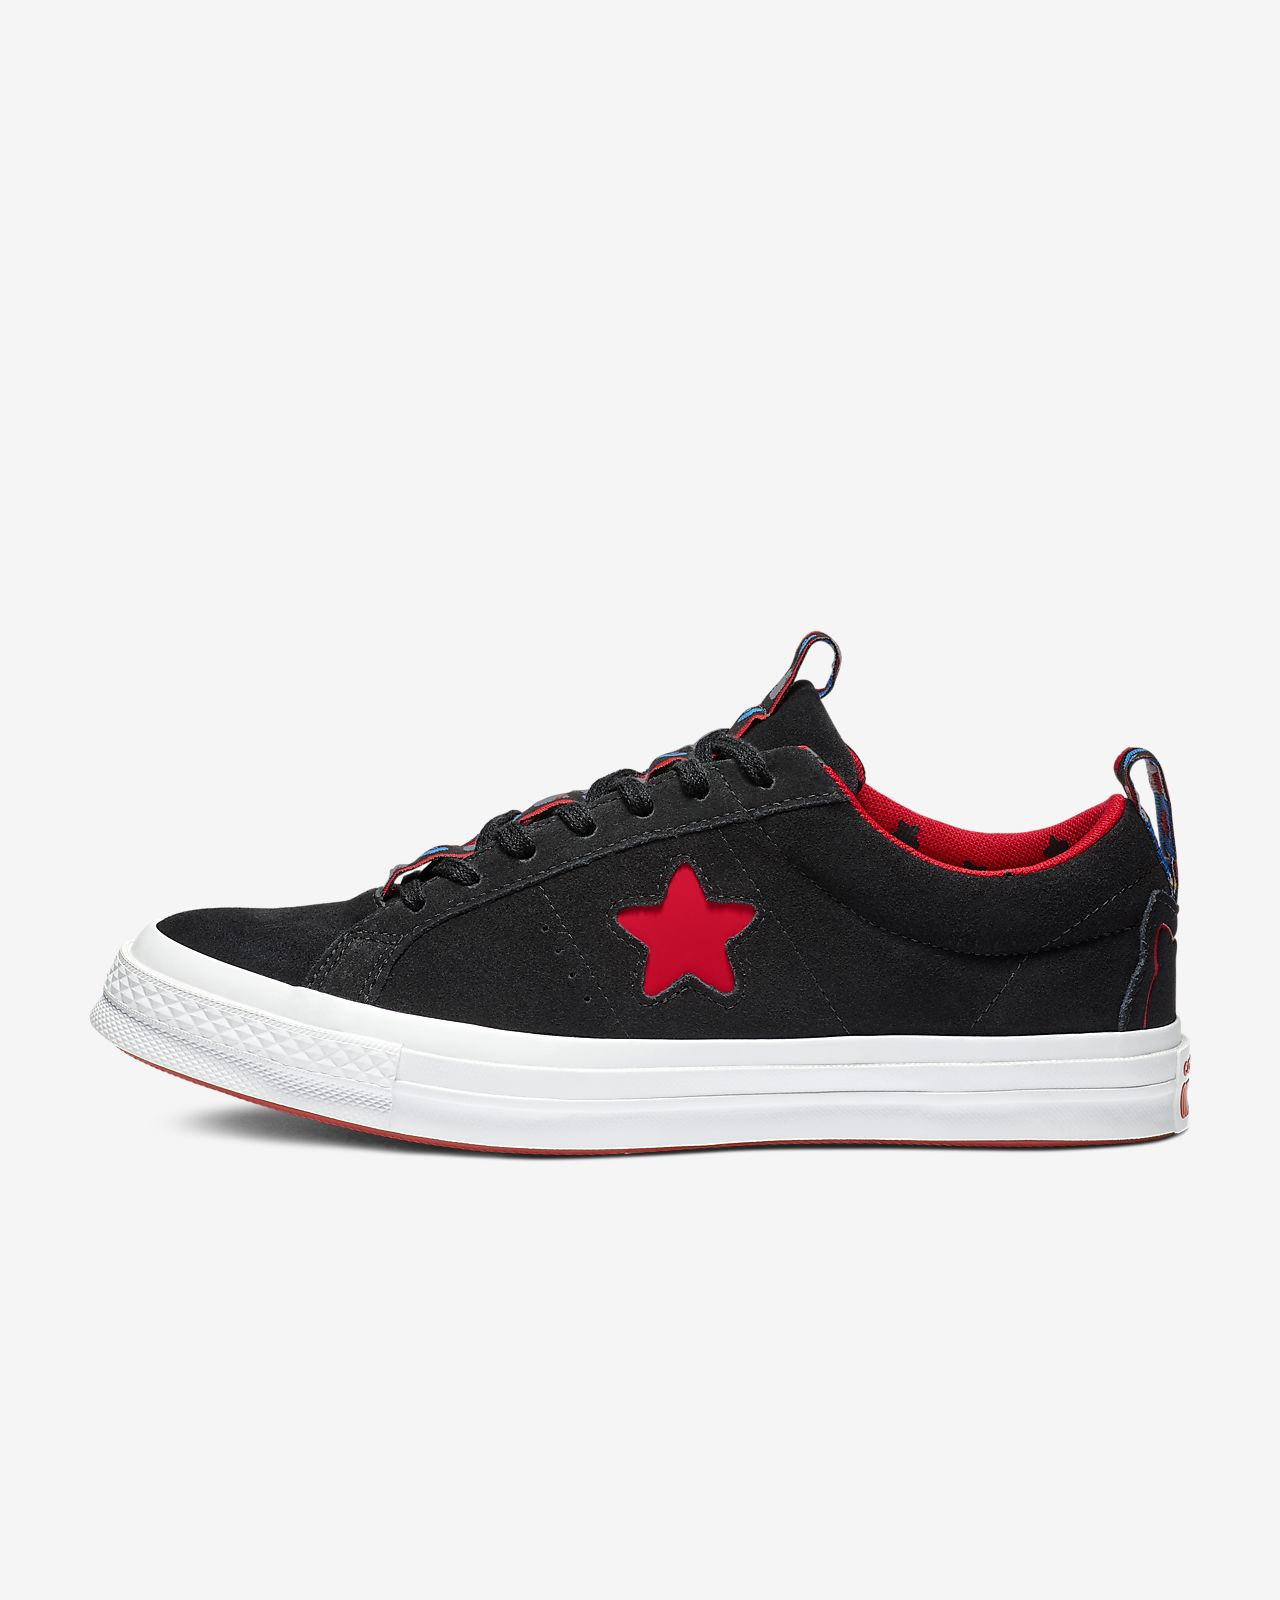 Converse x Hello Kitty One Star Low Top Unisex Shoe